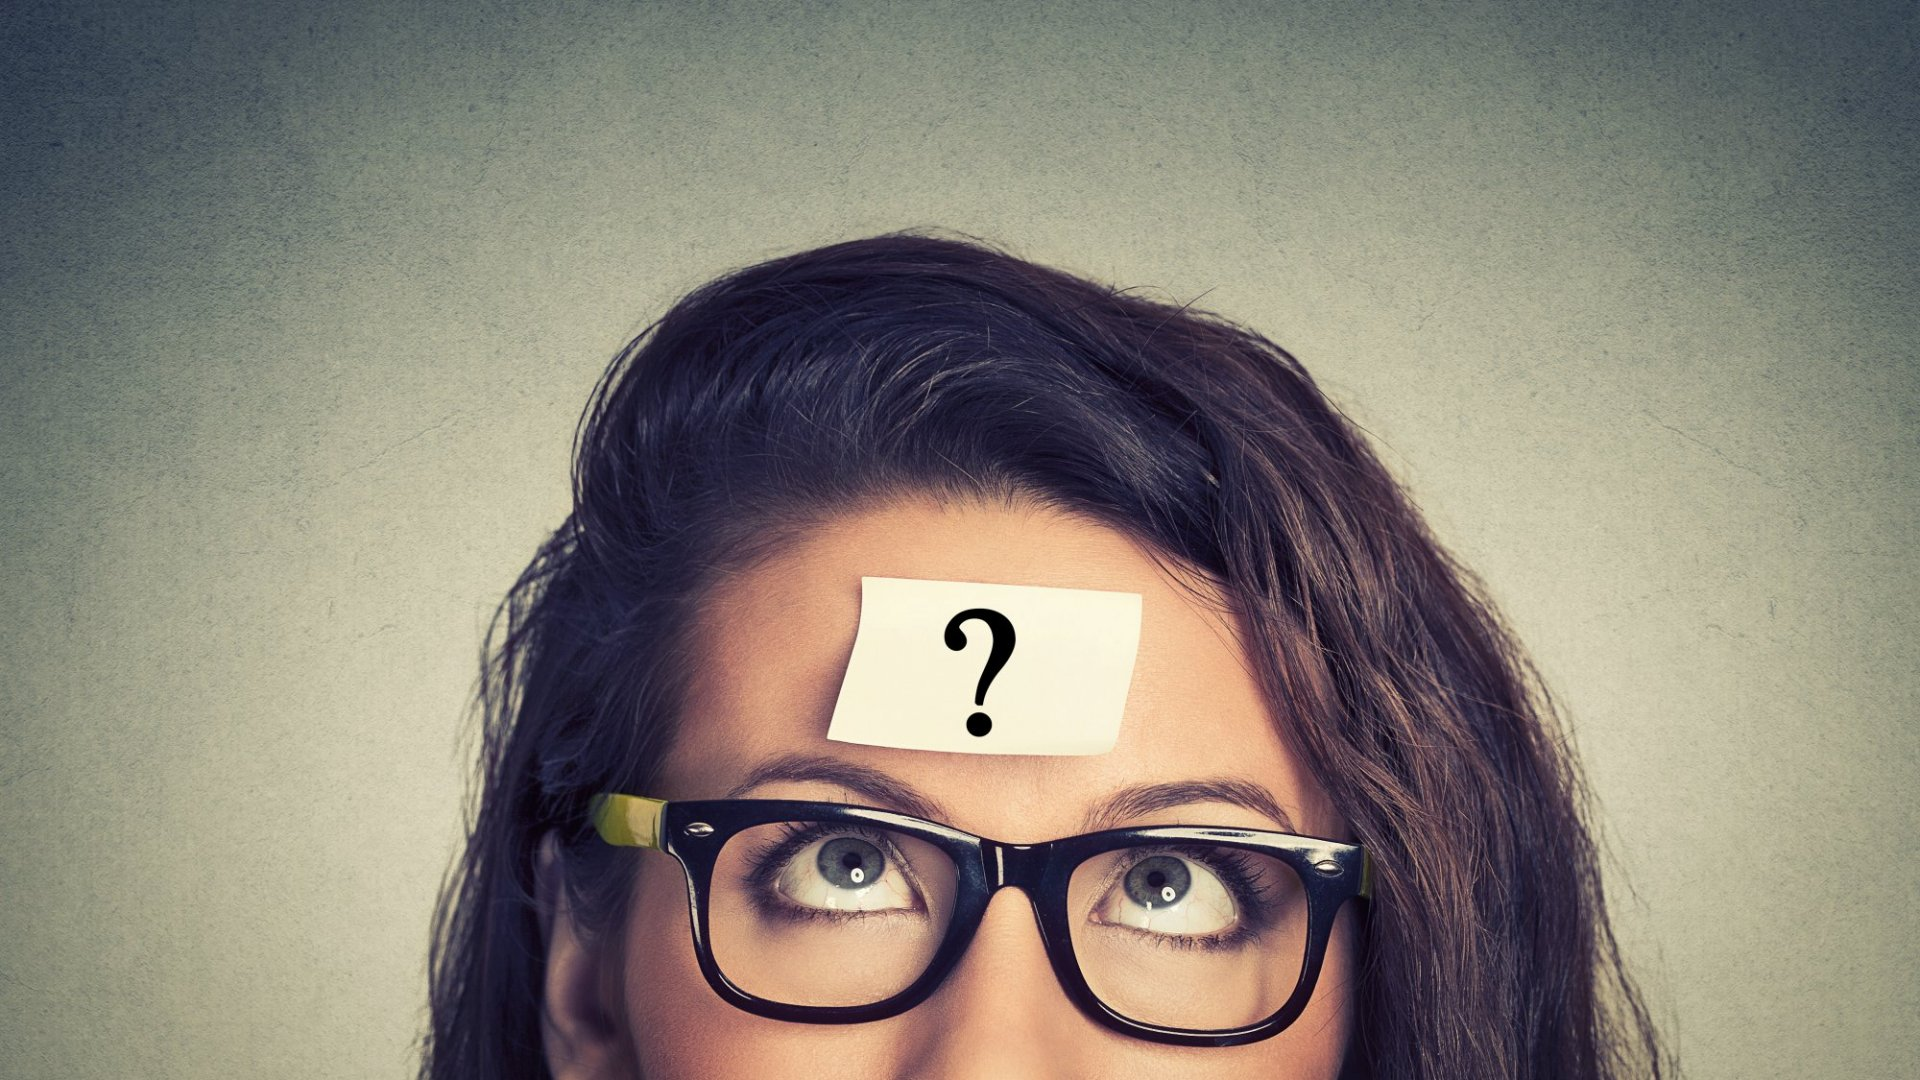 The One Question You Should Never Ask Your Team